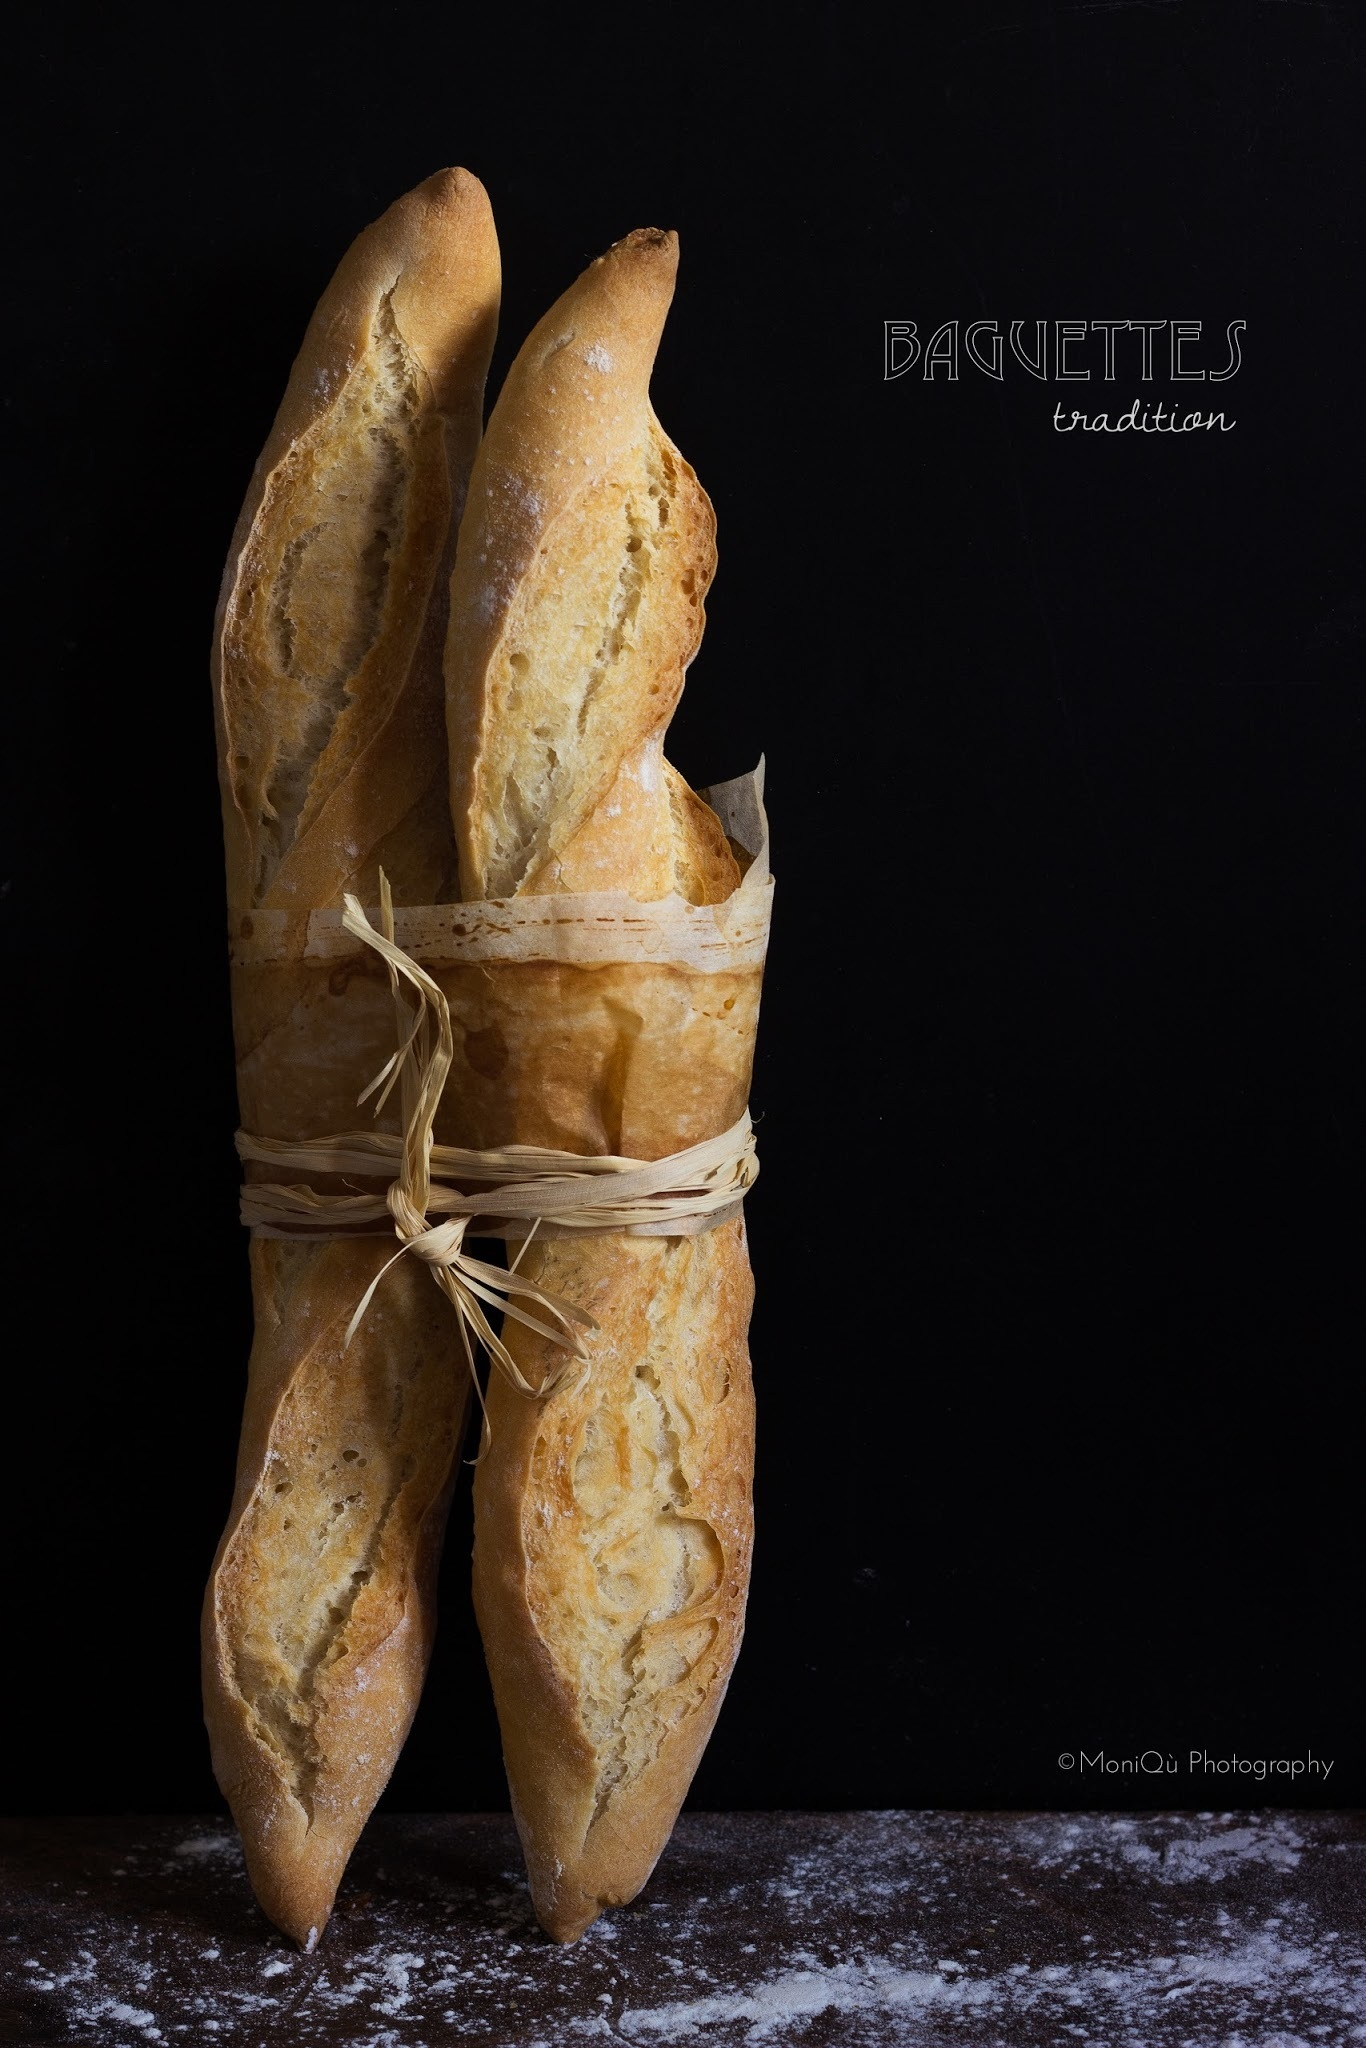 Baguettes tradition